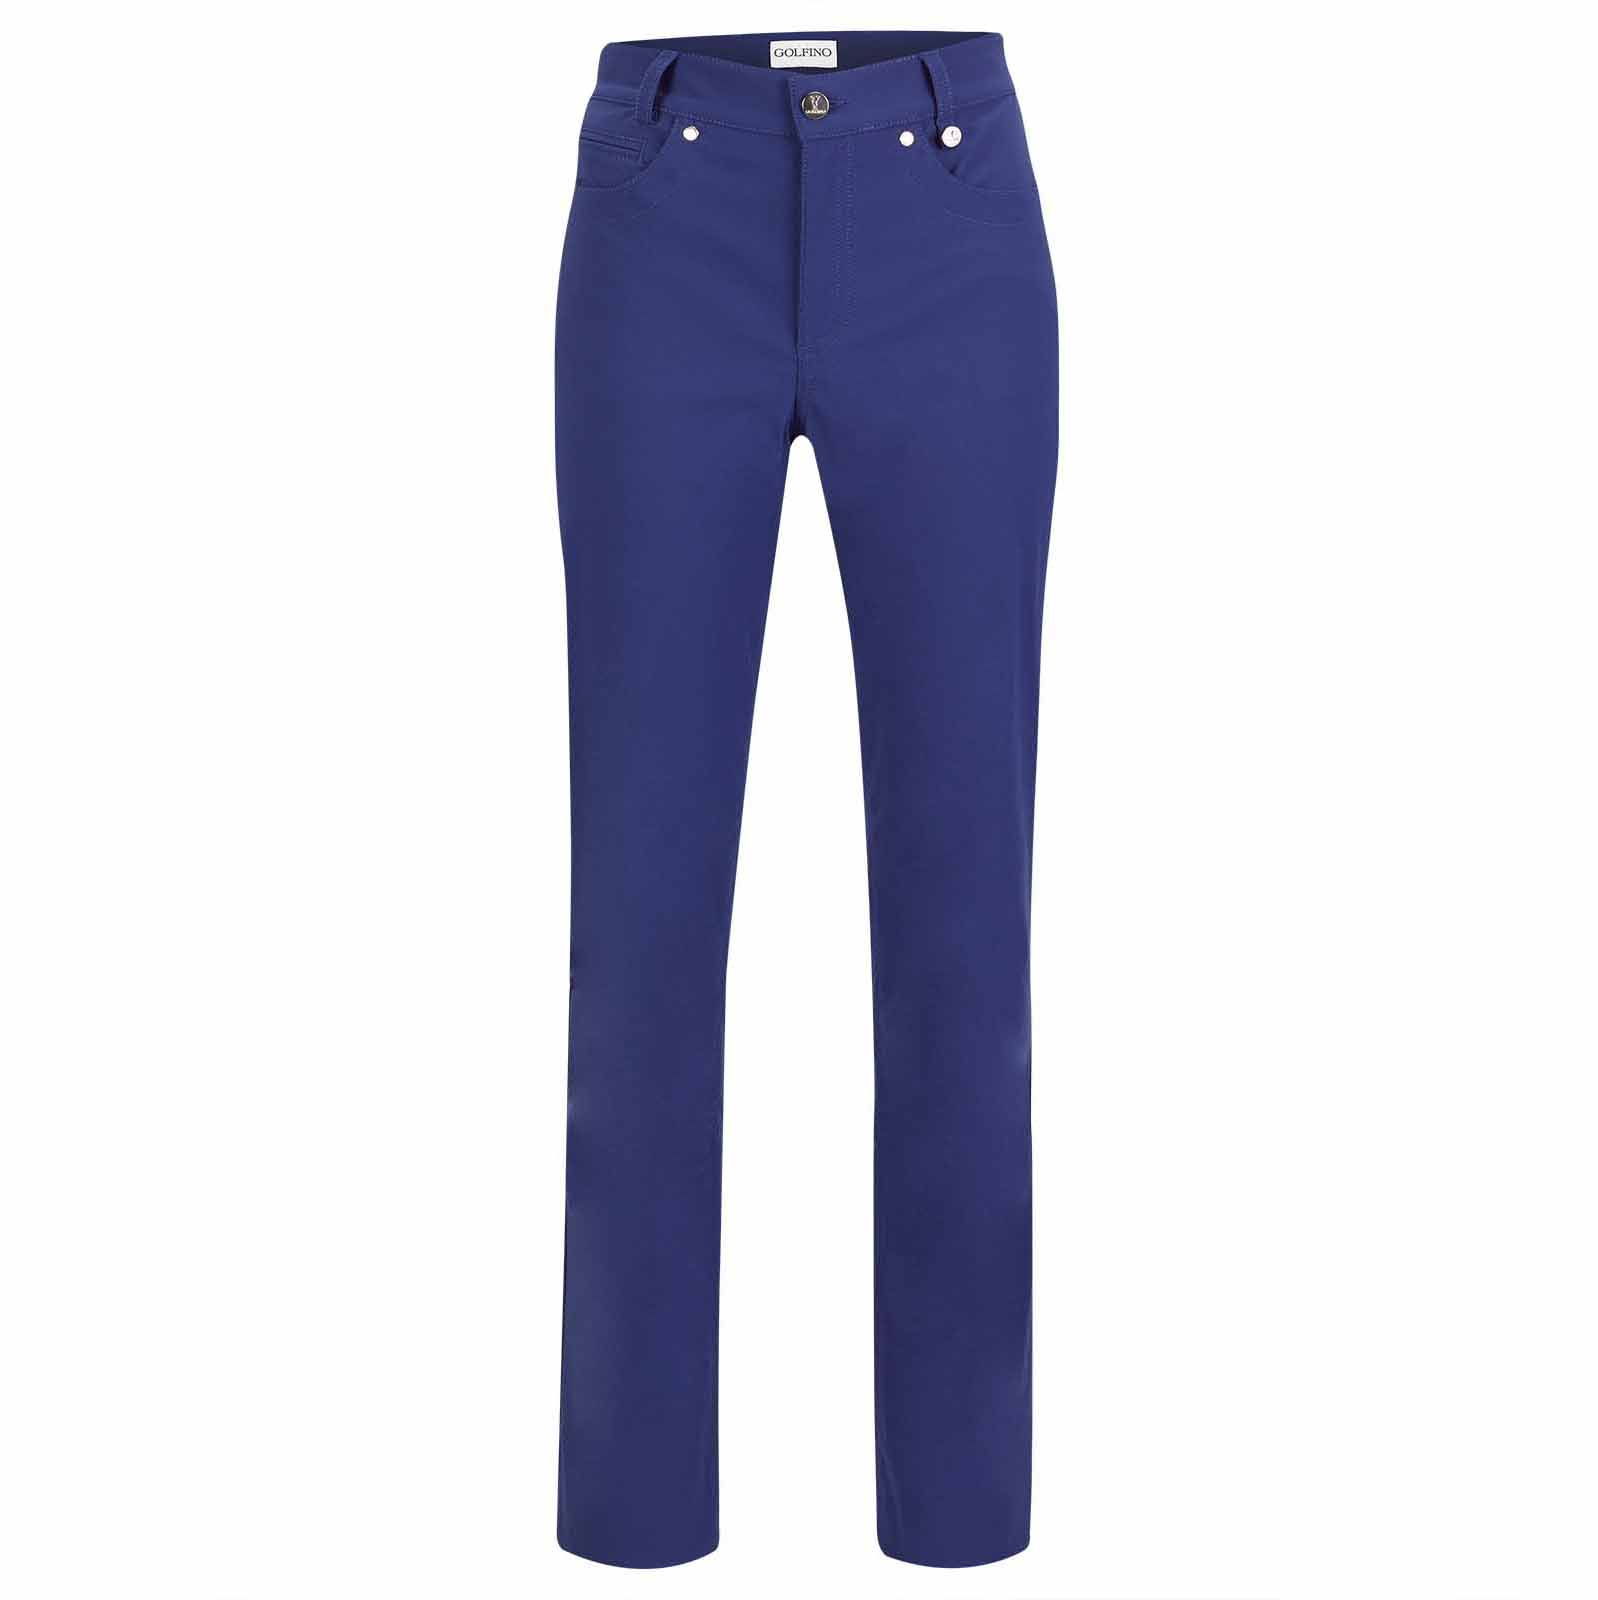 Sofiguard® ladies' stretch trousers in slim fit with UV protection